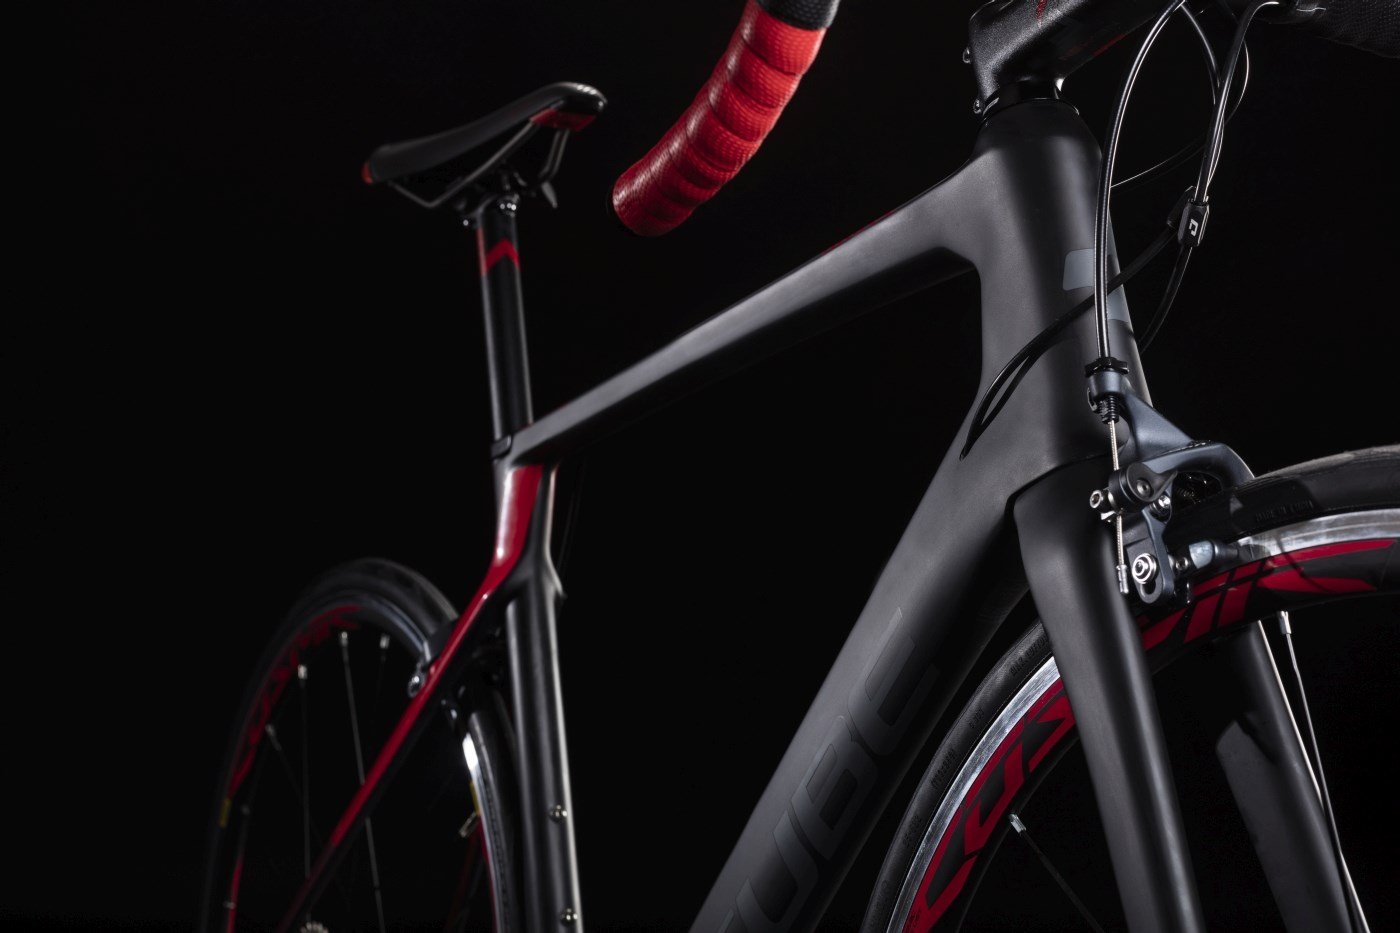 4e7f8be1207 Get 75% Off A Pair of 100% Sunglasses With This Bike! Add this 2019 Cube  Agree C:62 Pro Carbon Road ...